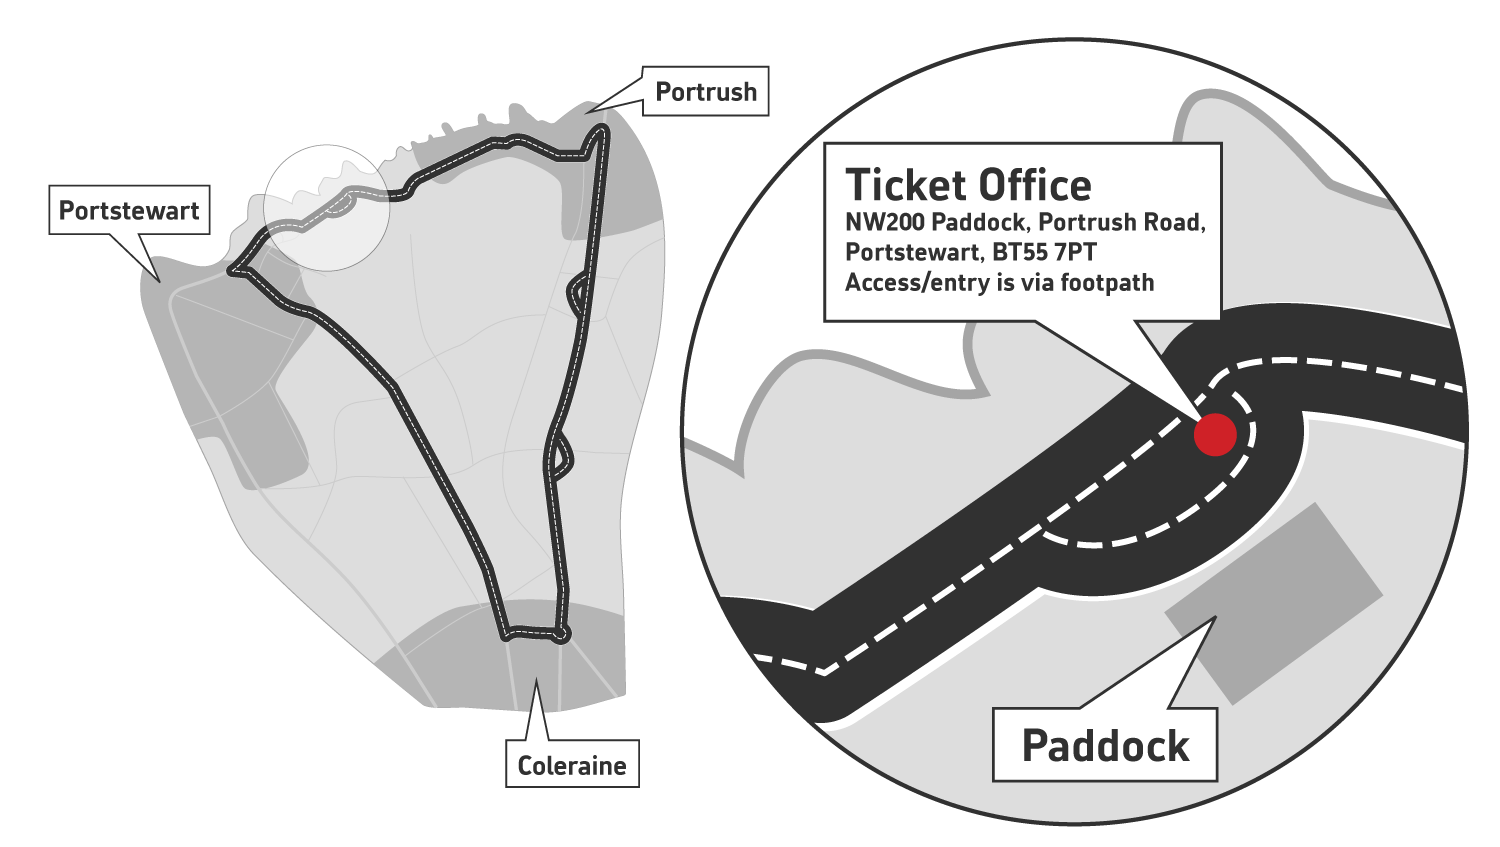 Ticket Opening Hours